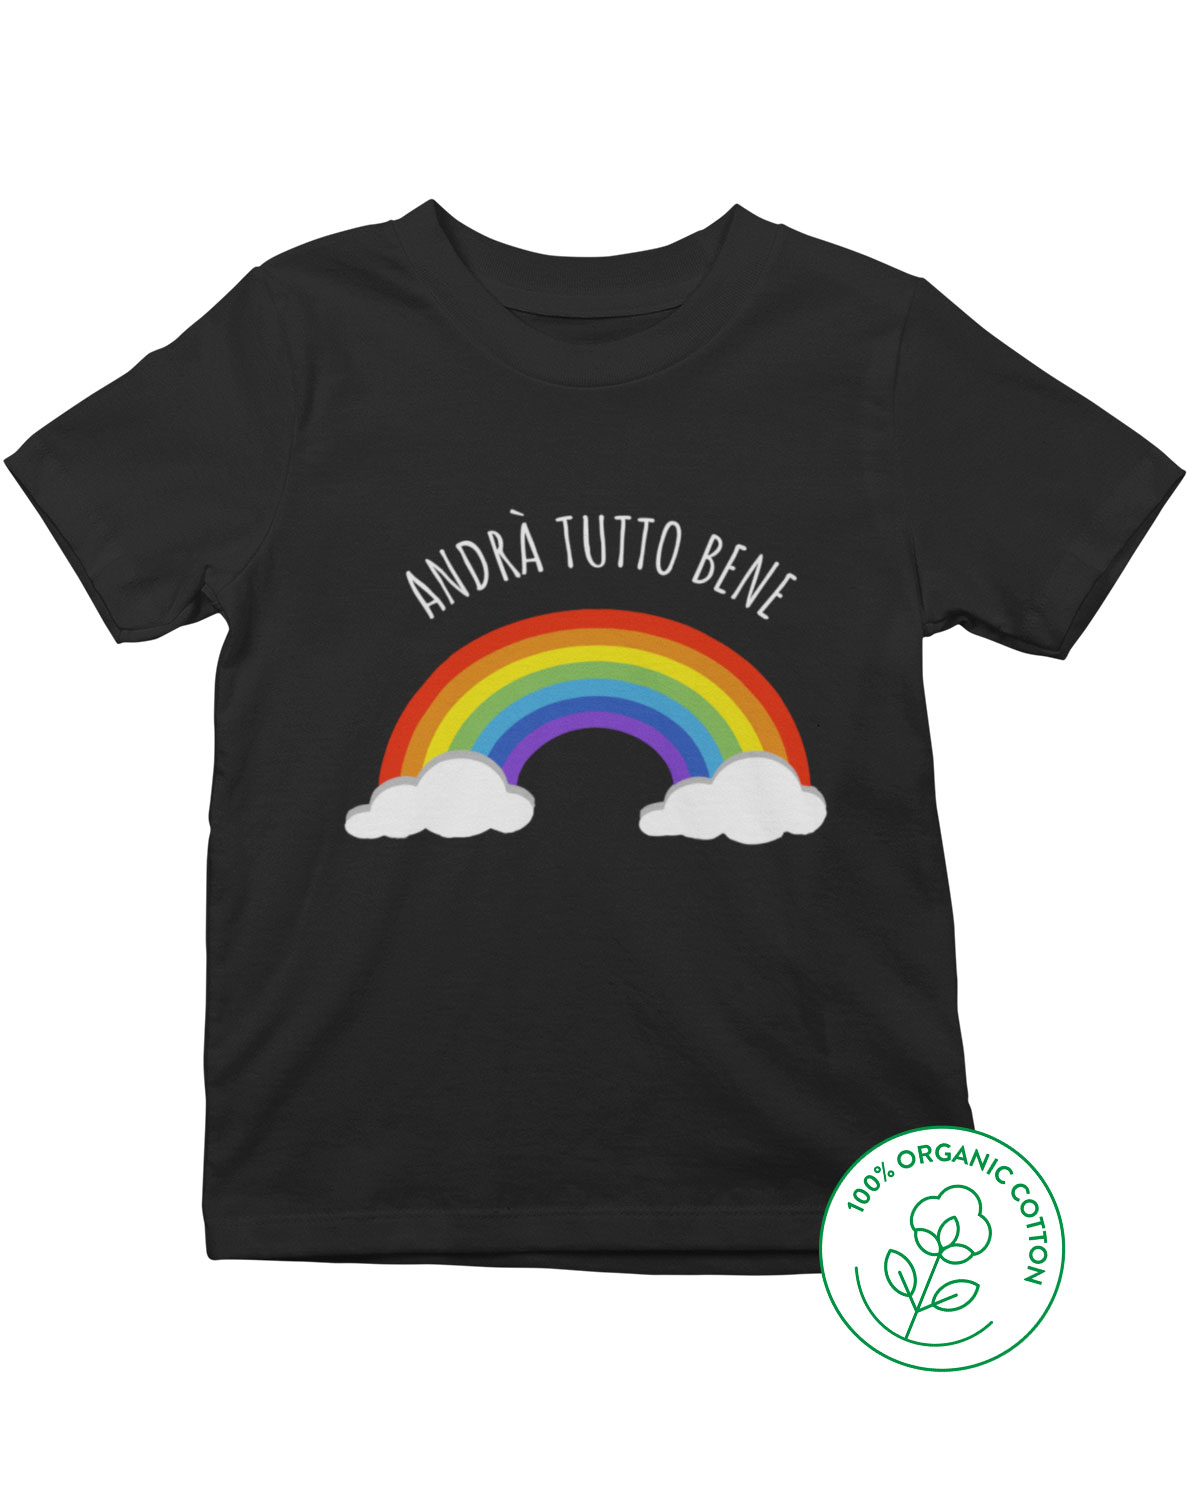 Andrà Tutto Bene 2020 T-SHIRT Everything will be all right adults kids sizes T55